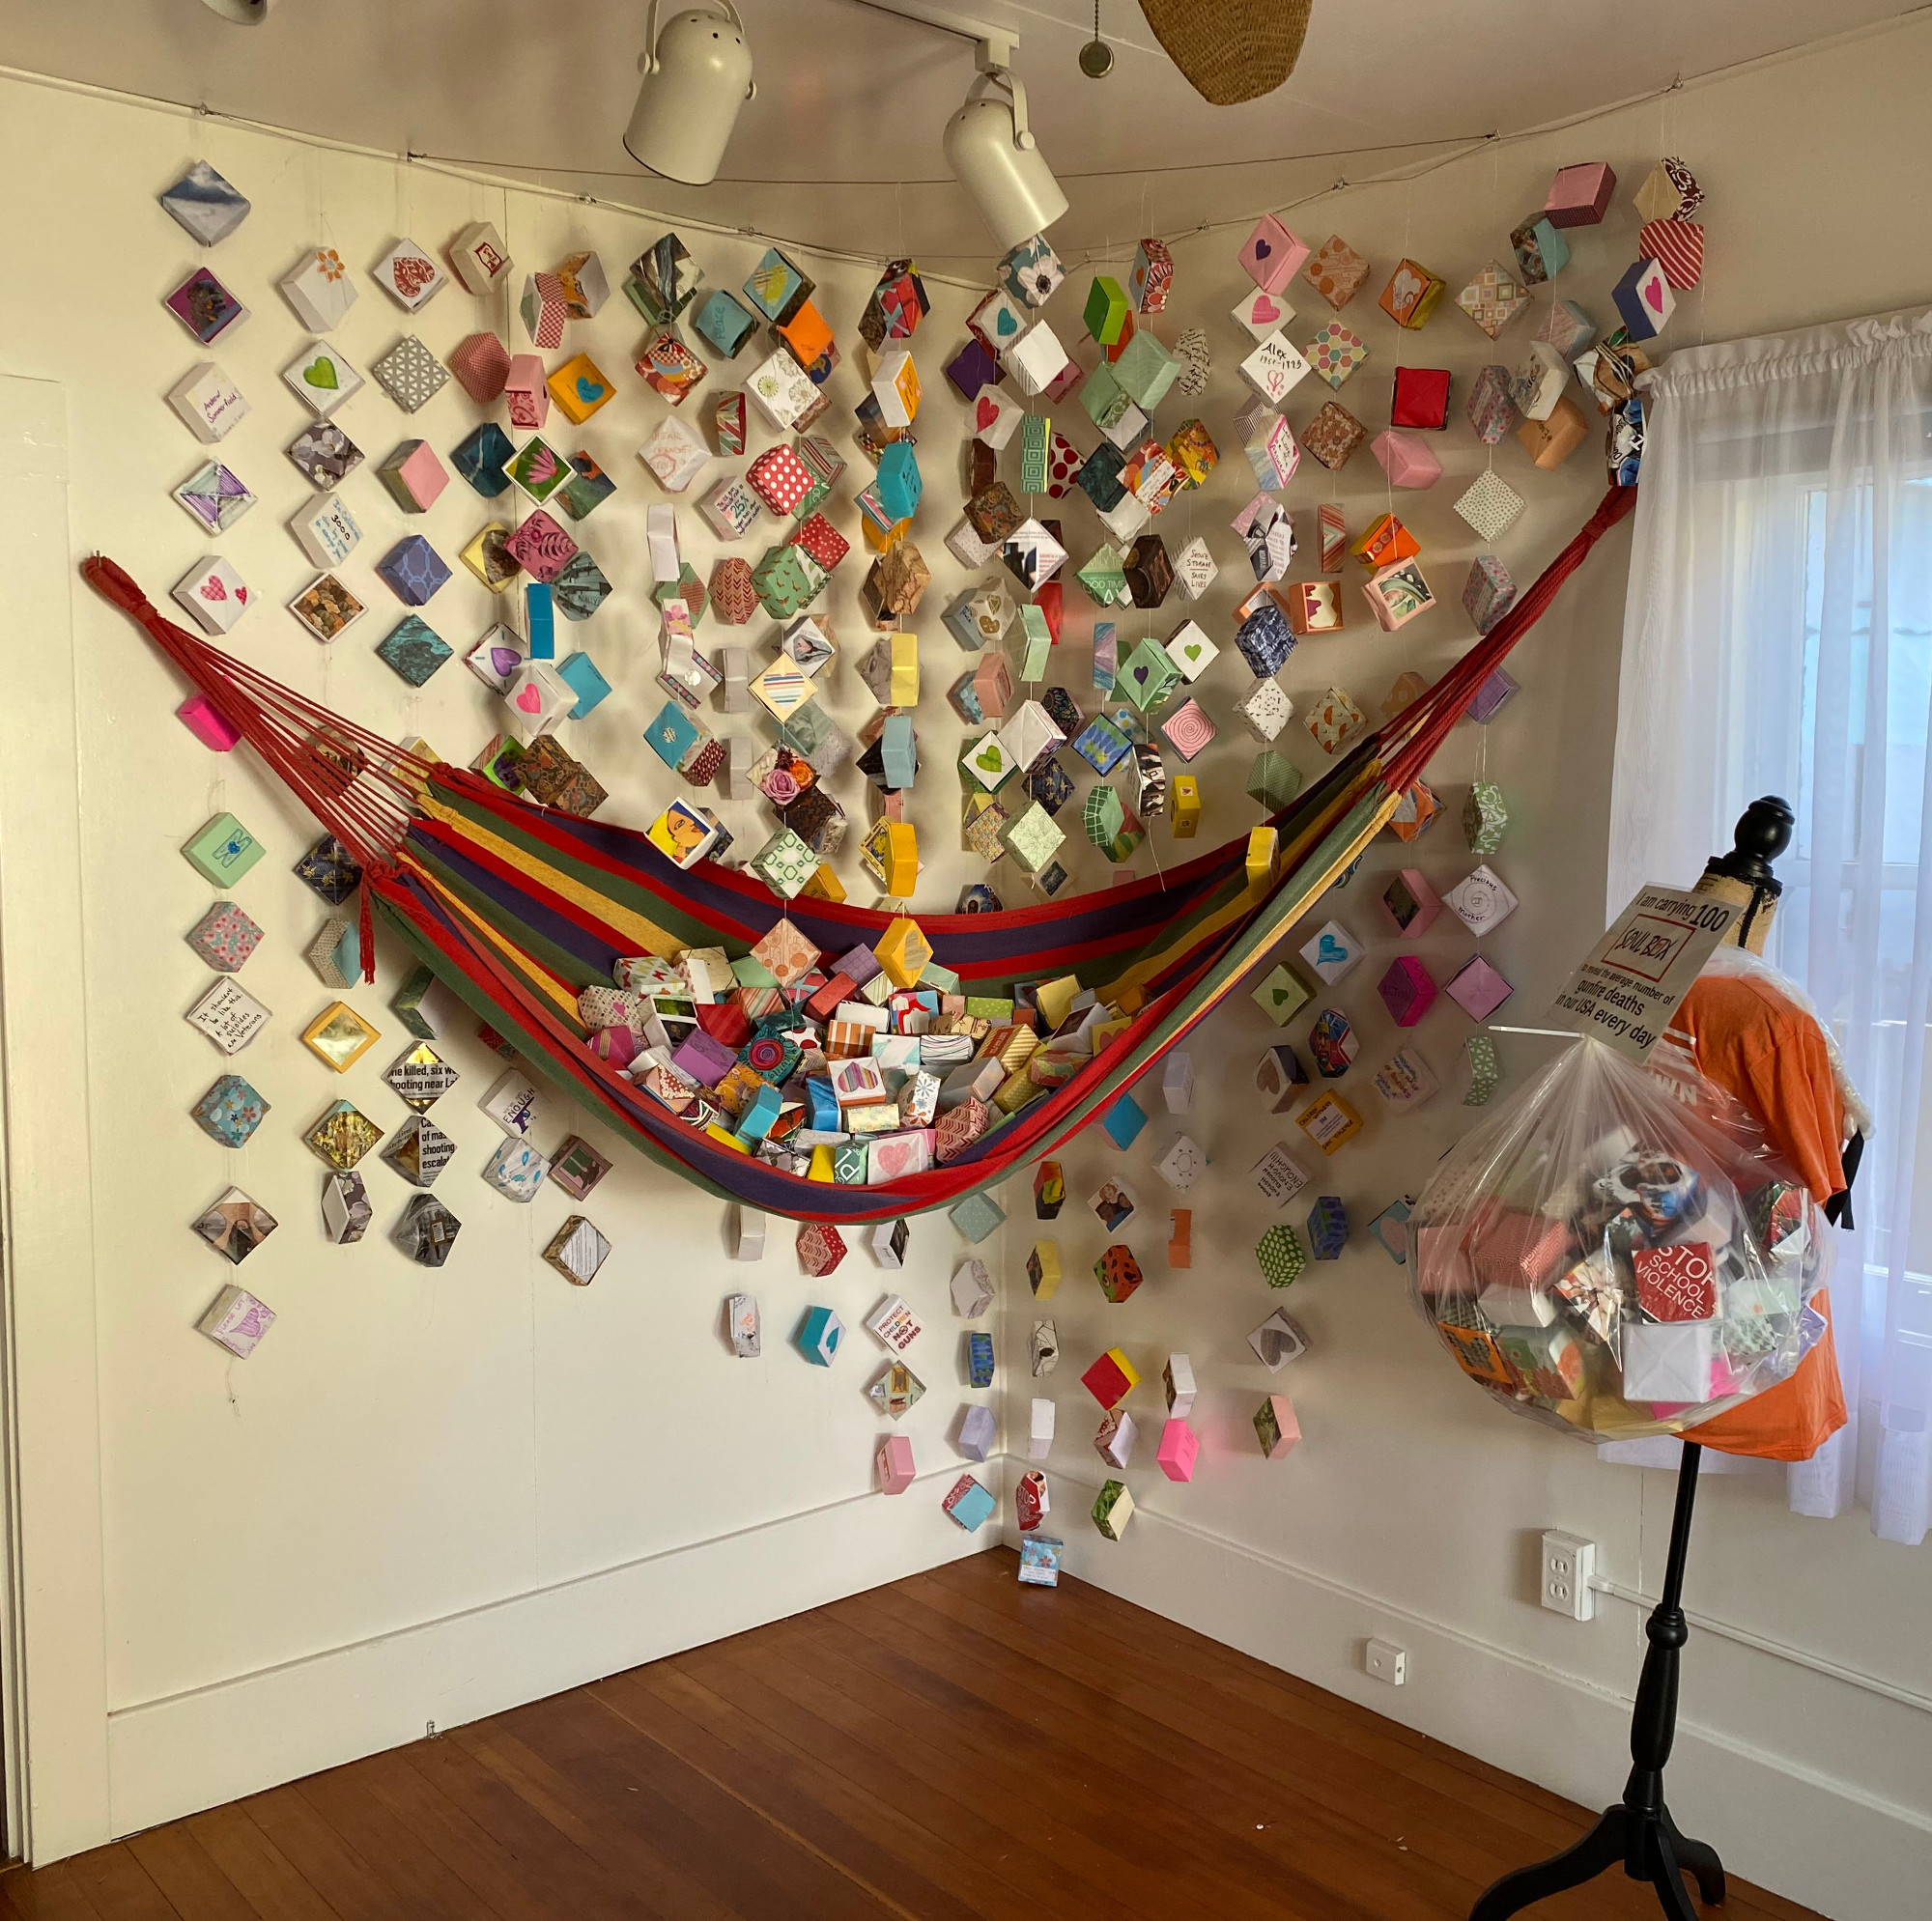 Strands on the wall and piles of Soul Boxes in a hammock